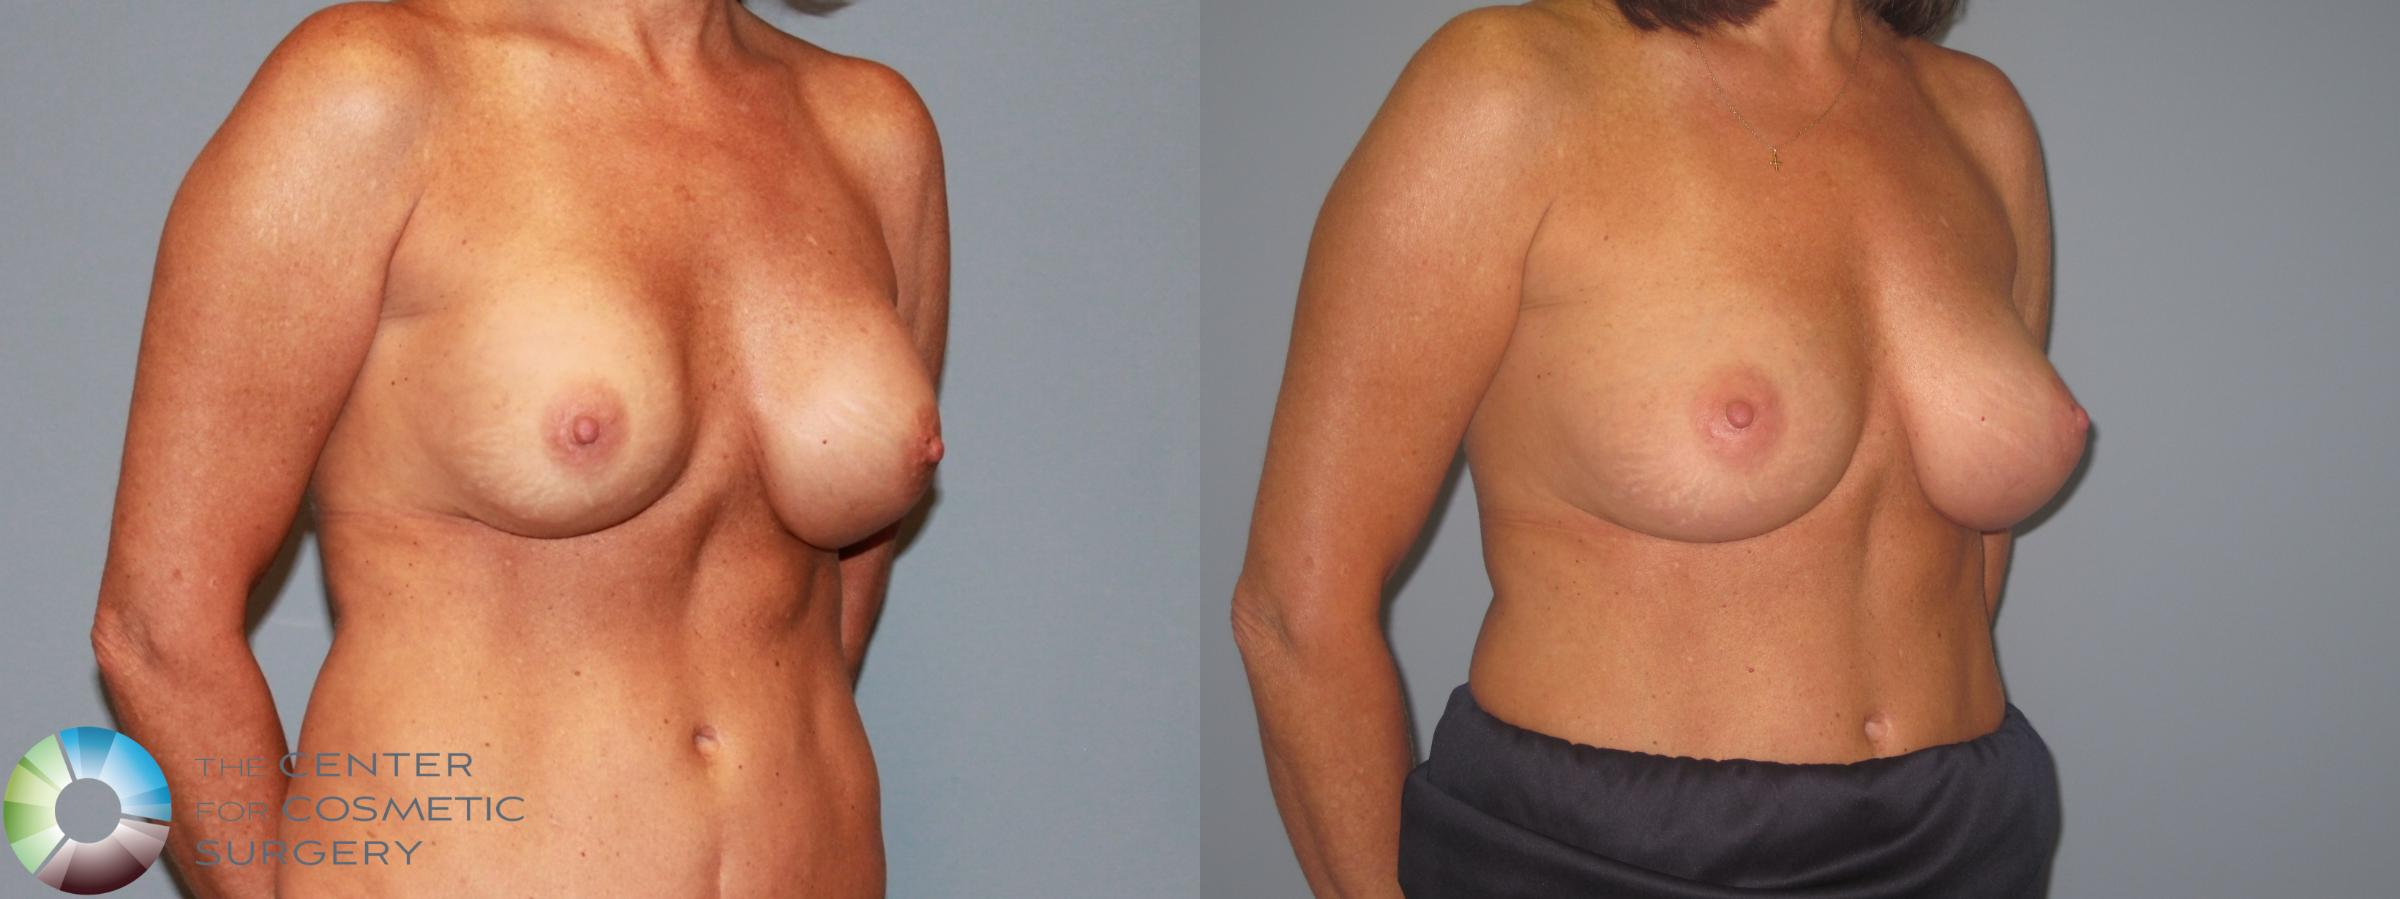 Breast Implant Revision Case 713 Before & After View #1 | Golden, CO | The Center for Cosmetic Surgery